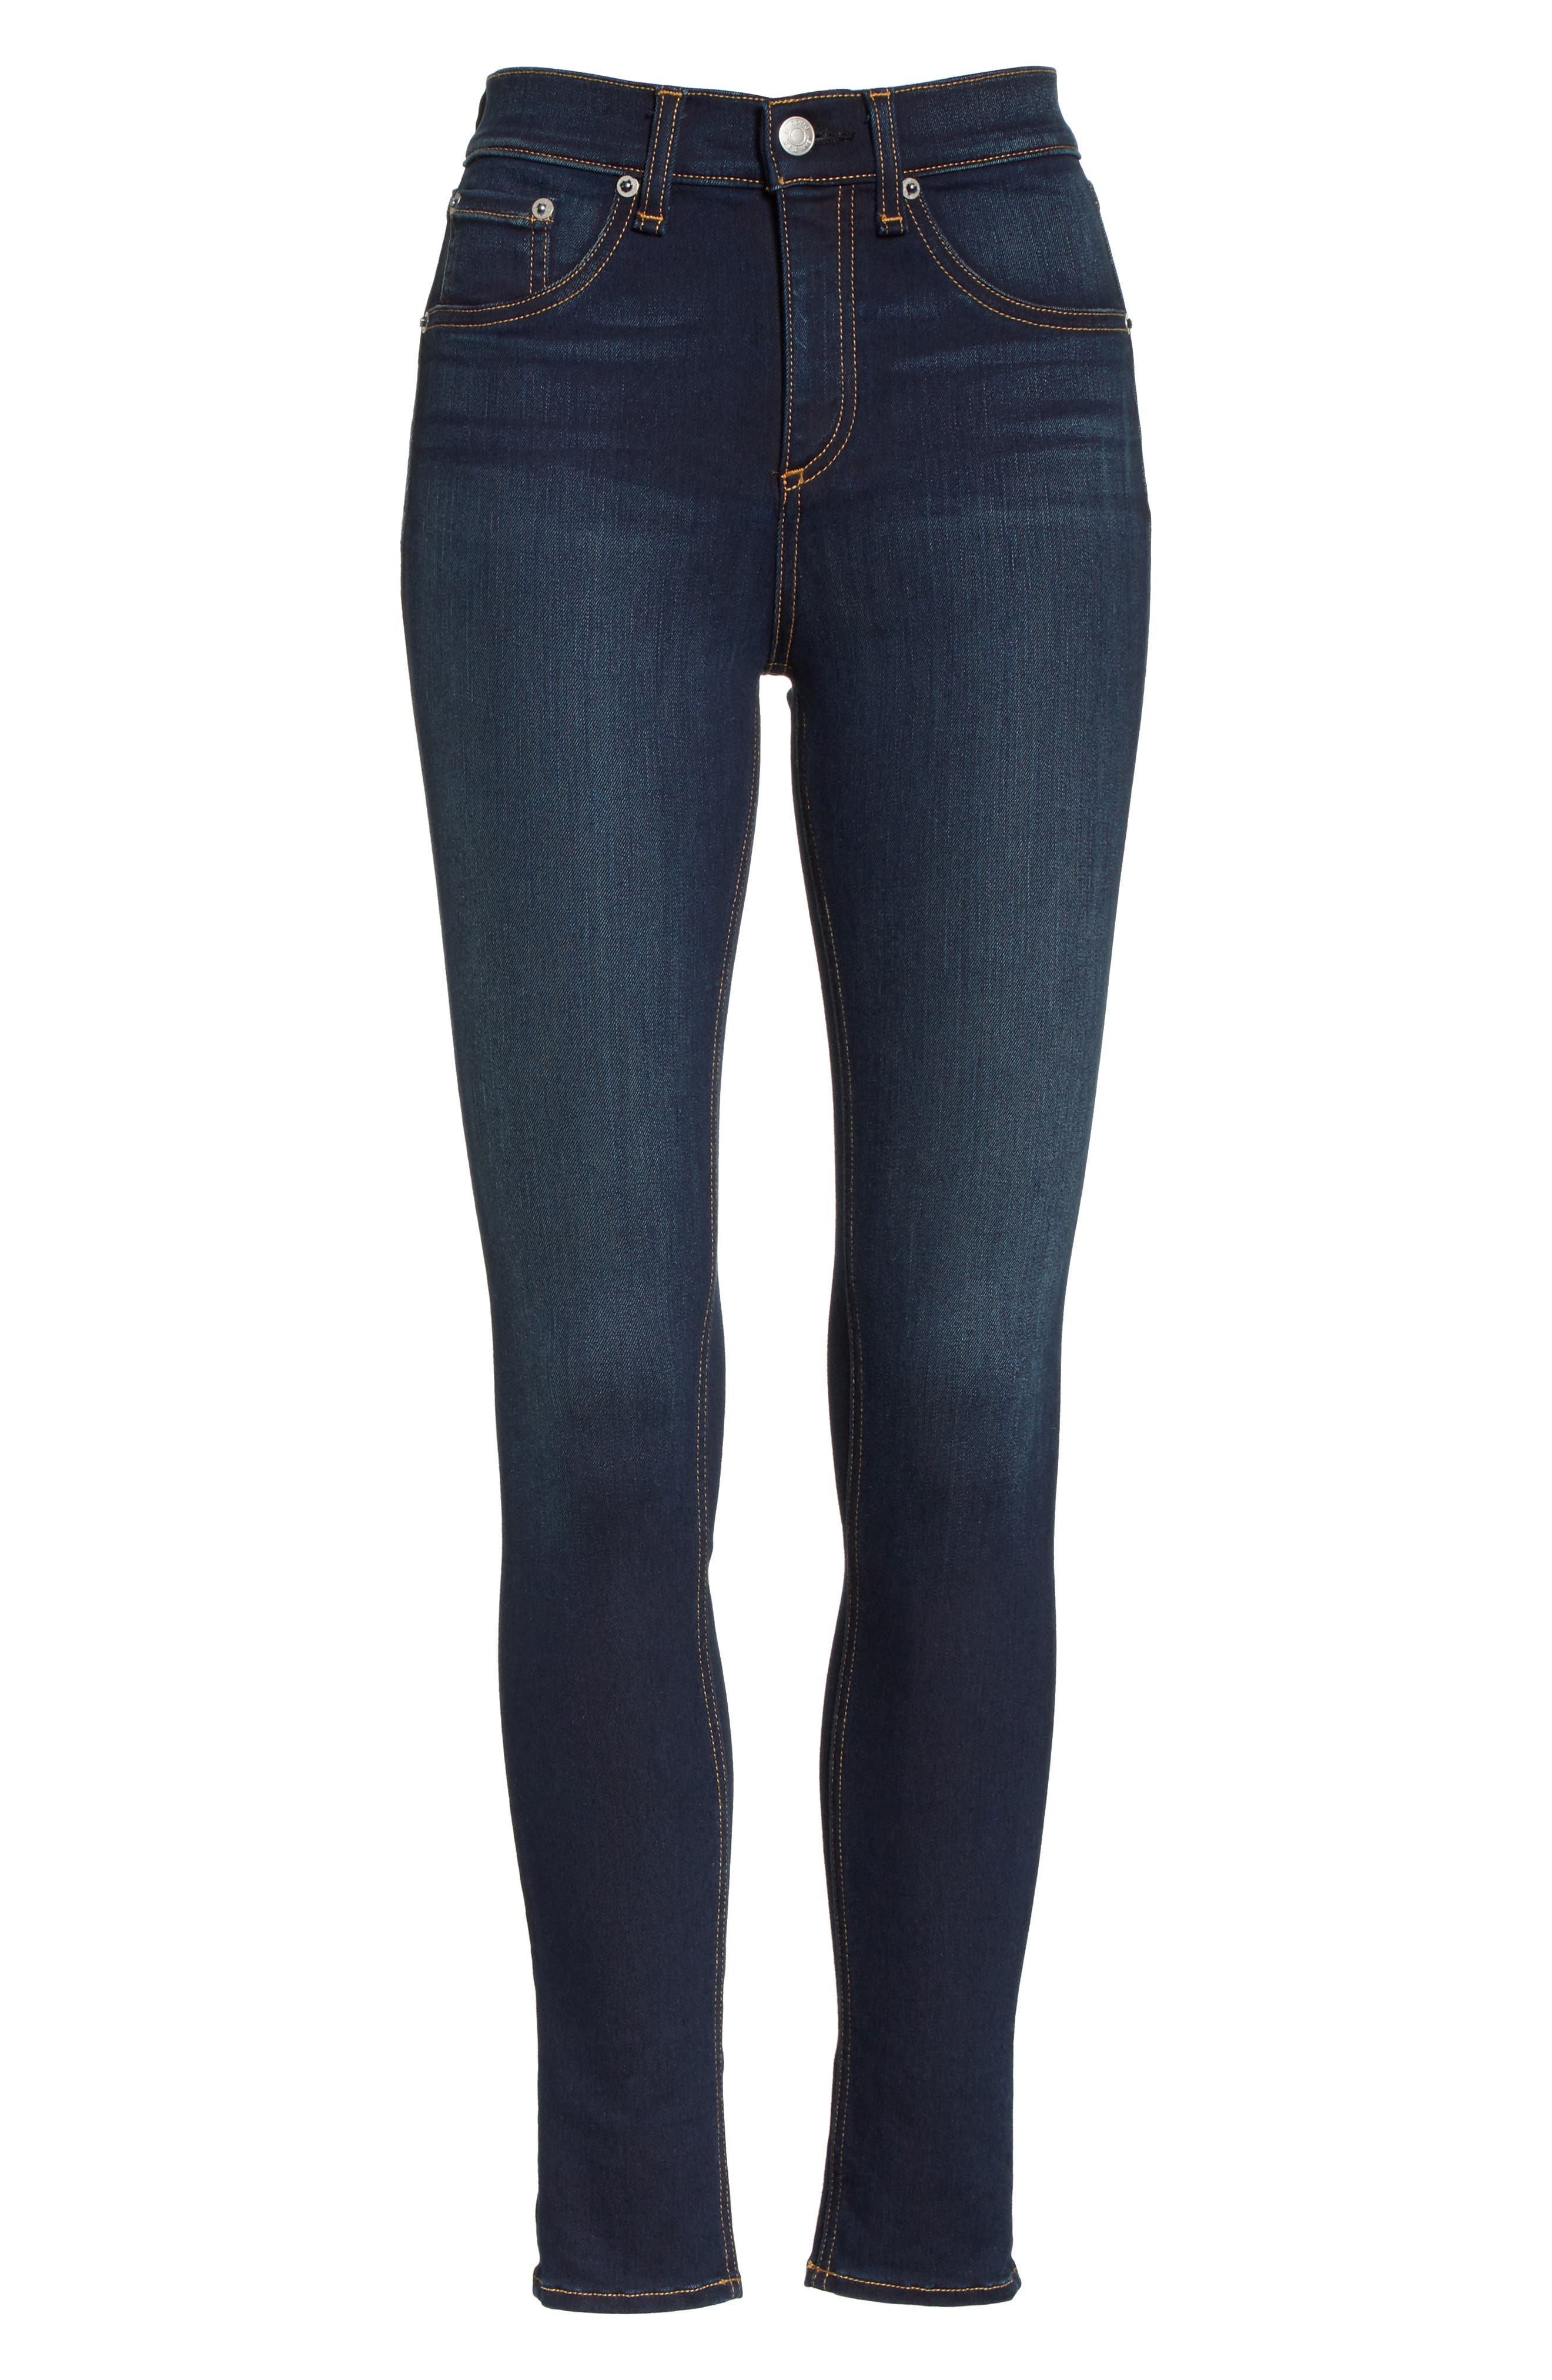 High Waist Ankle Skinny Jeans,                             Alternate thumbnail 7, color,                             BEDFORD